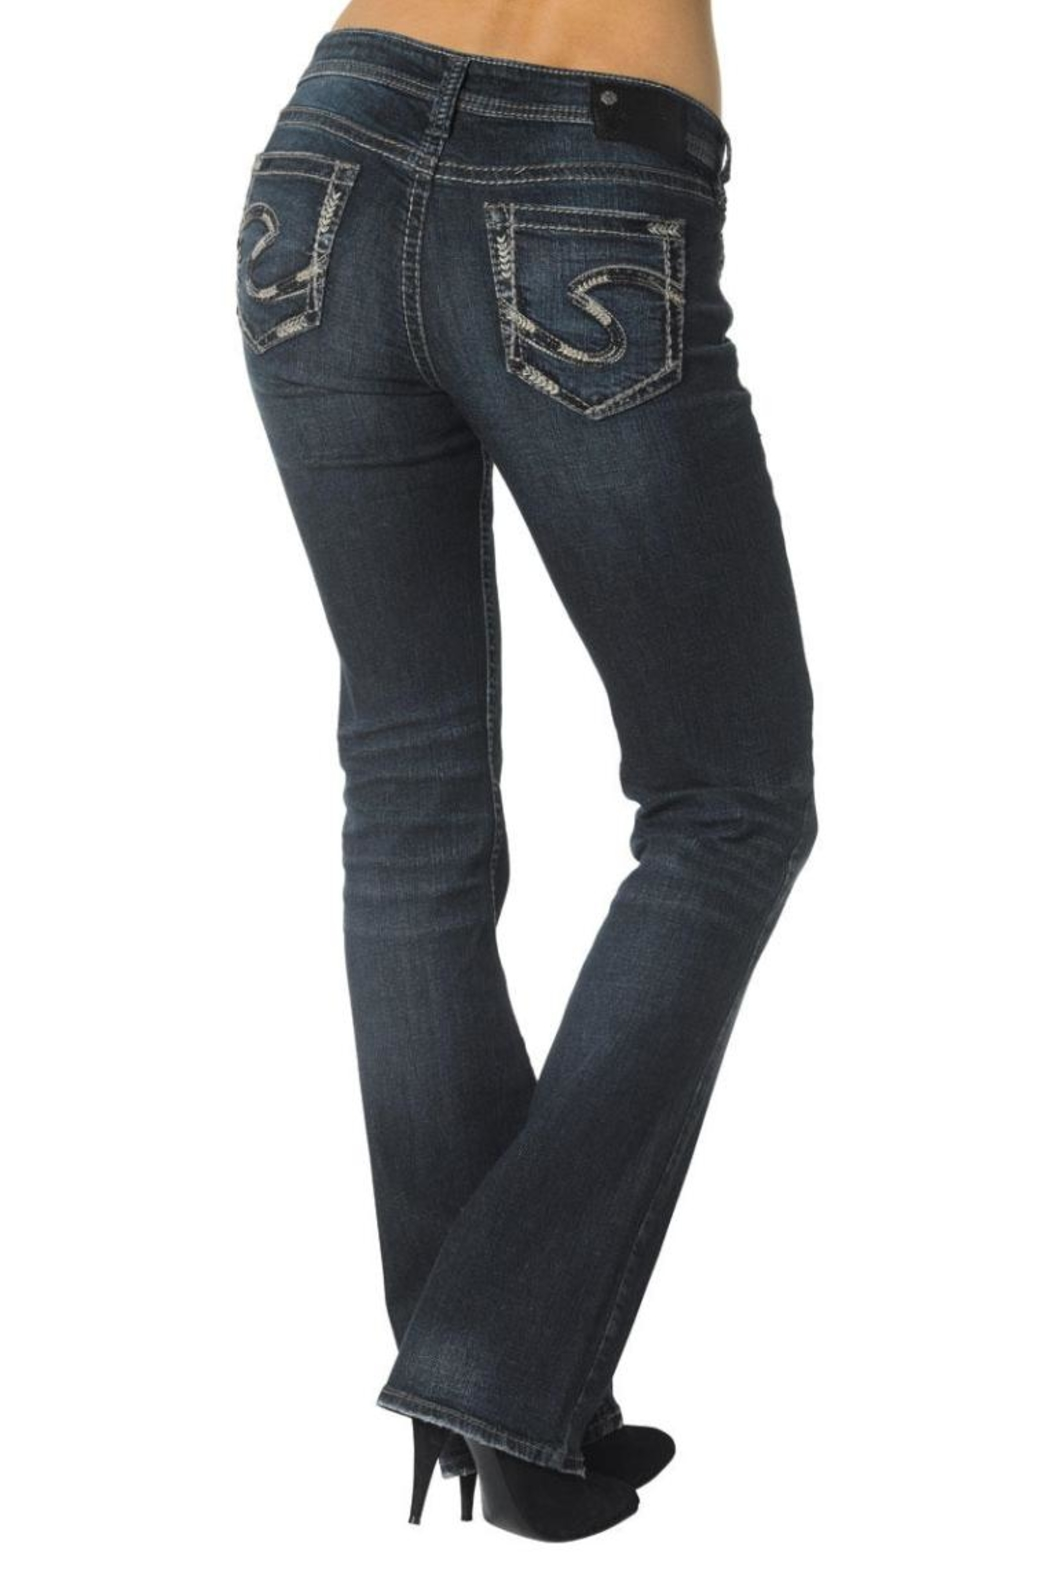 Silver Jeans Co. Aiko Defined-Curve Bootcut - Front Full Image